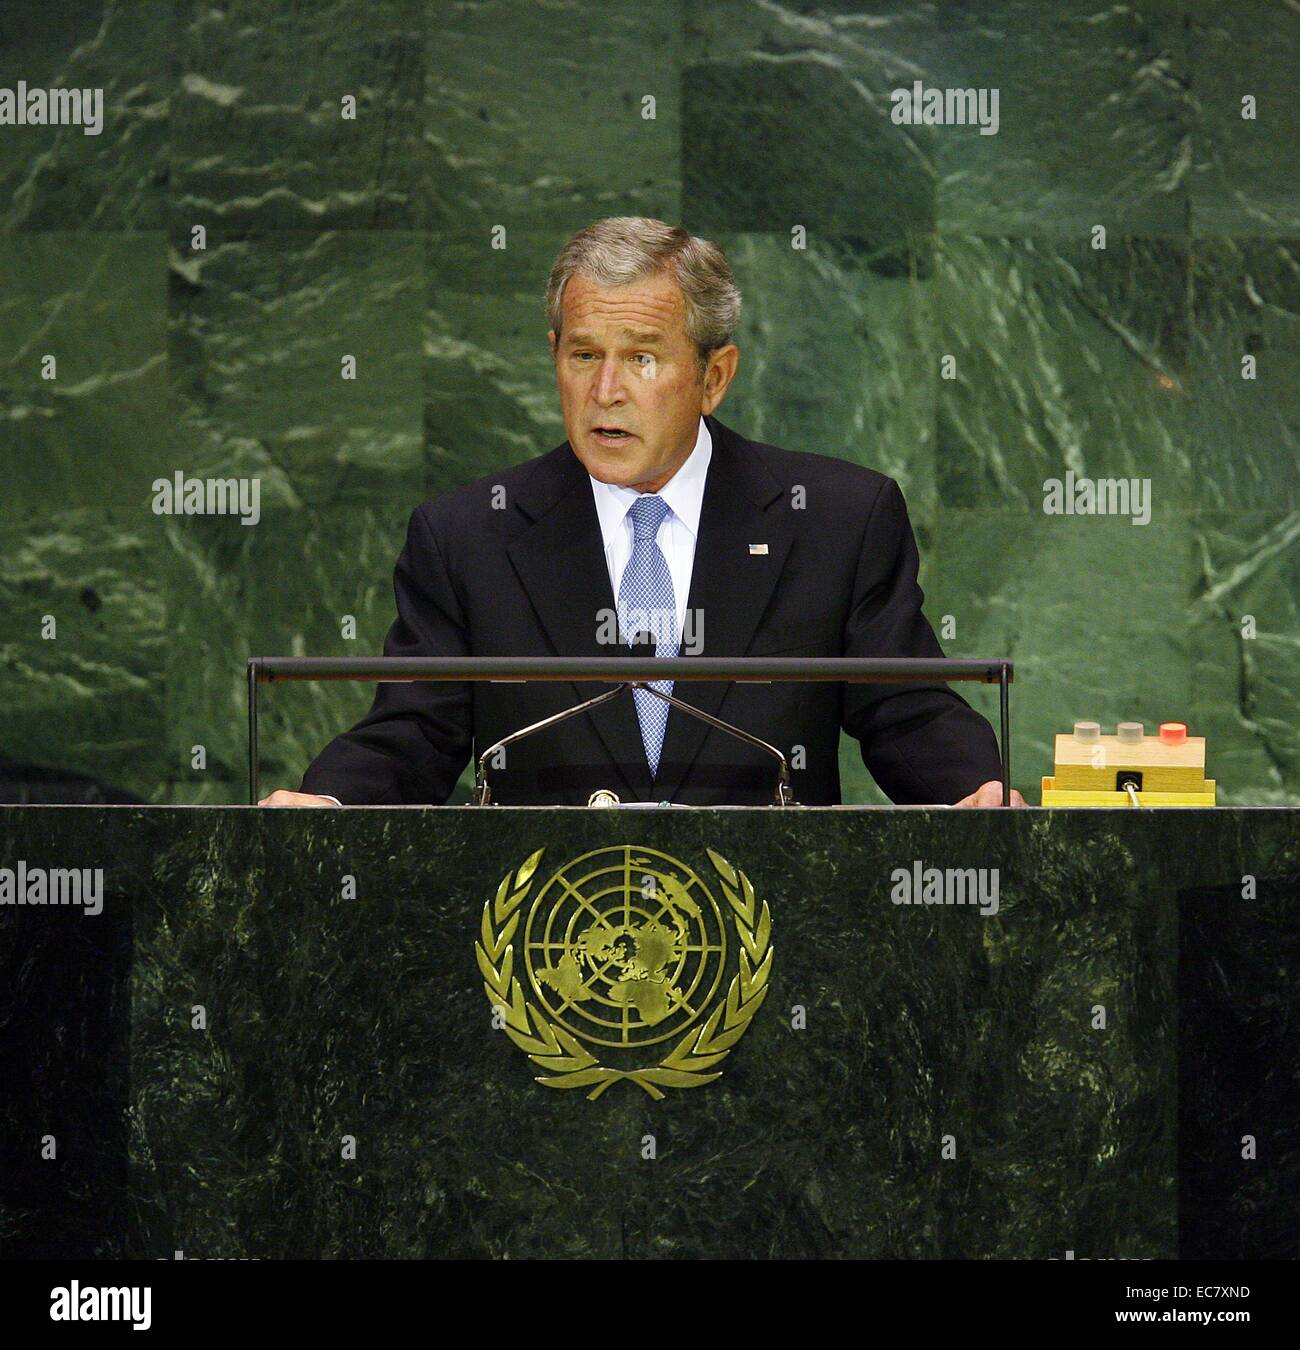 George W Bush US president 2001-2009 addresses the UN General Assembly 2007 - Stock Image